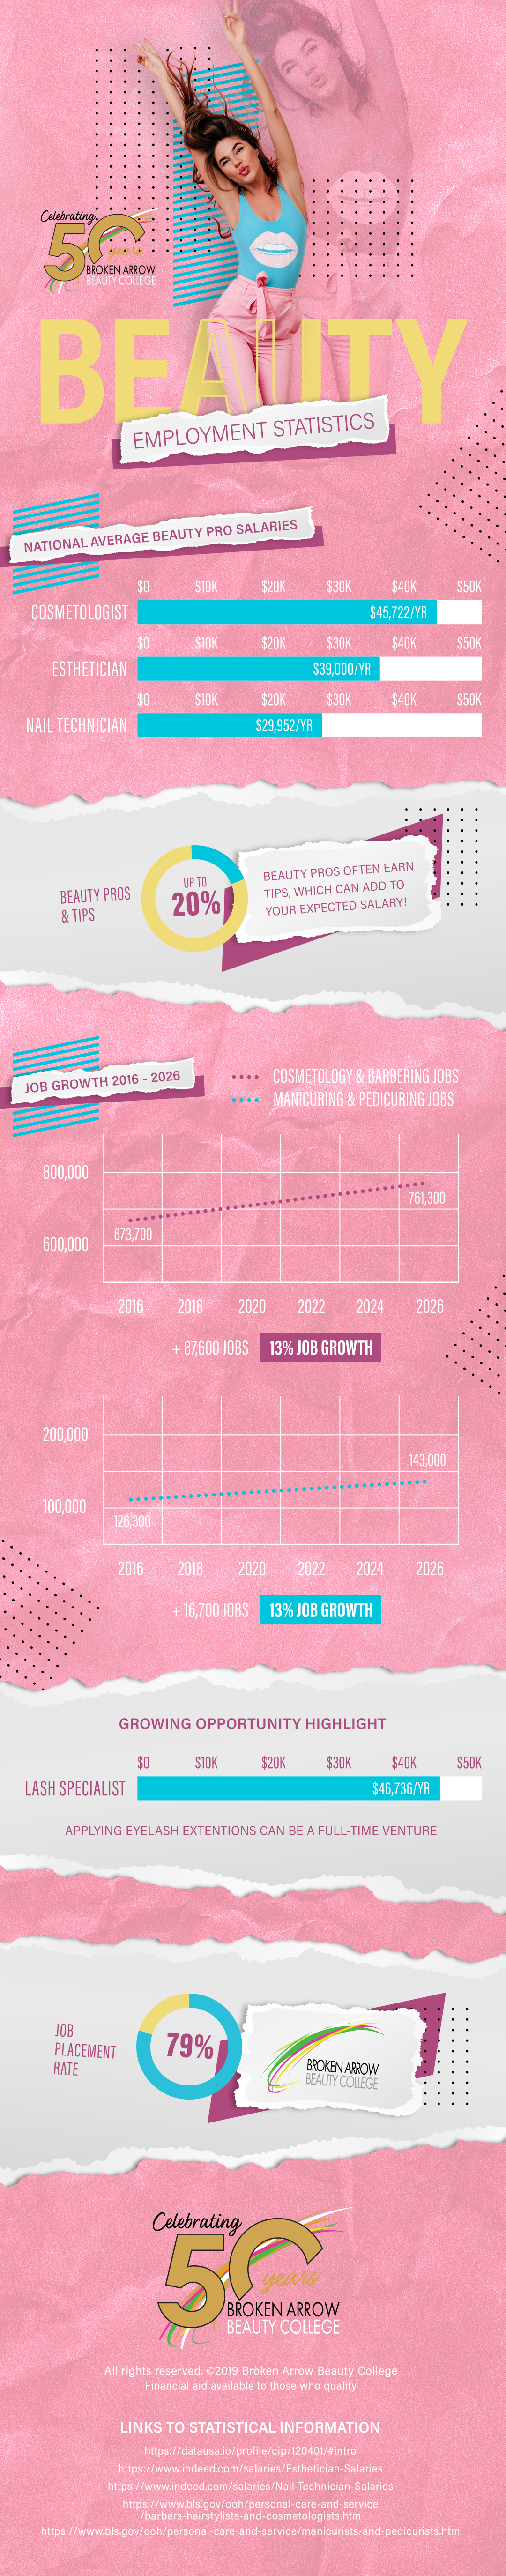 Beauty Industry Employment Statistics Infographic for Broken Arrow Beauty College